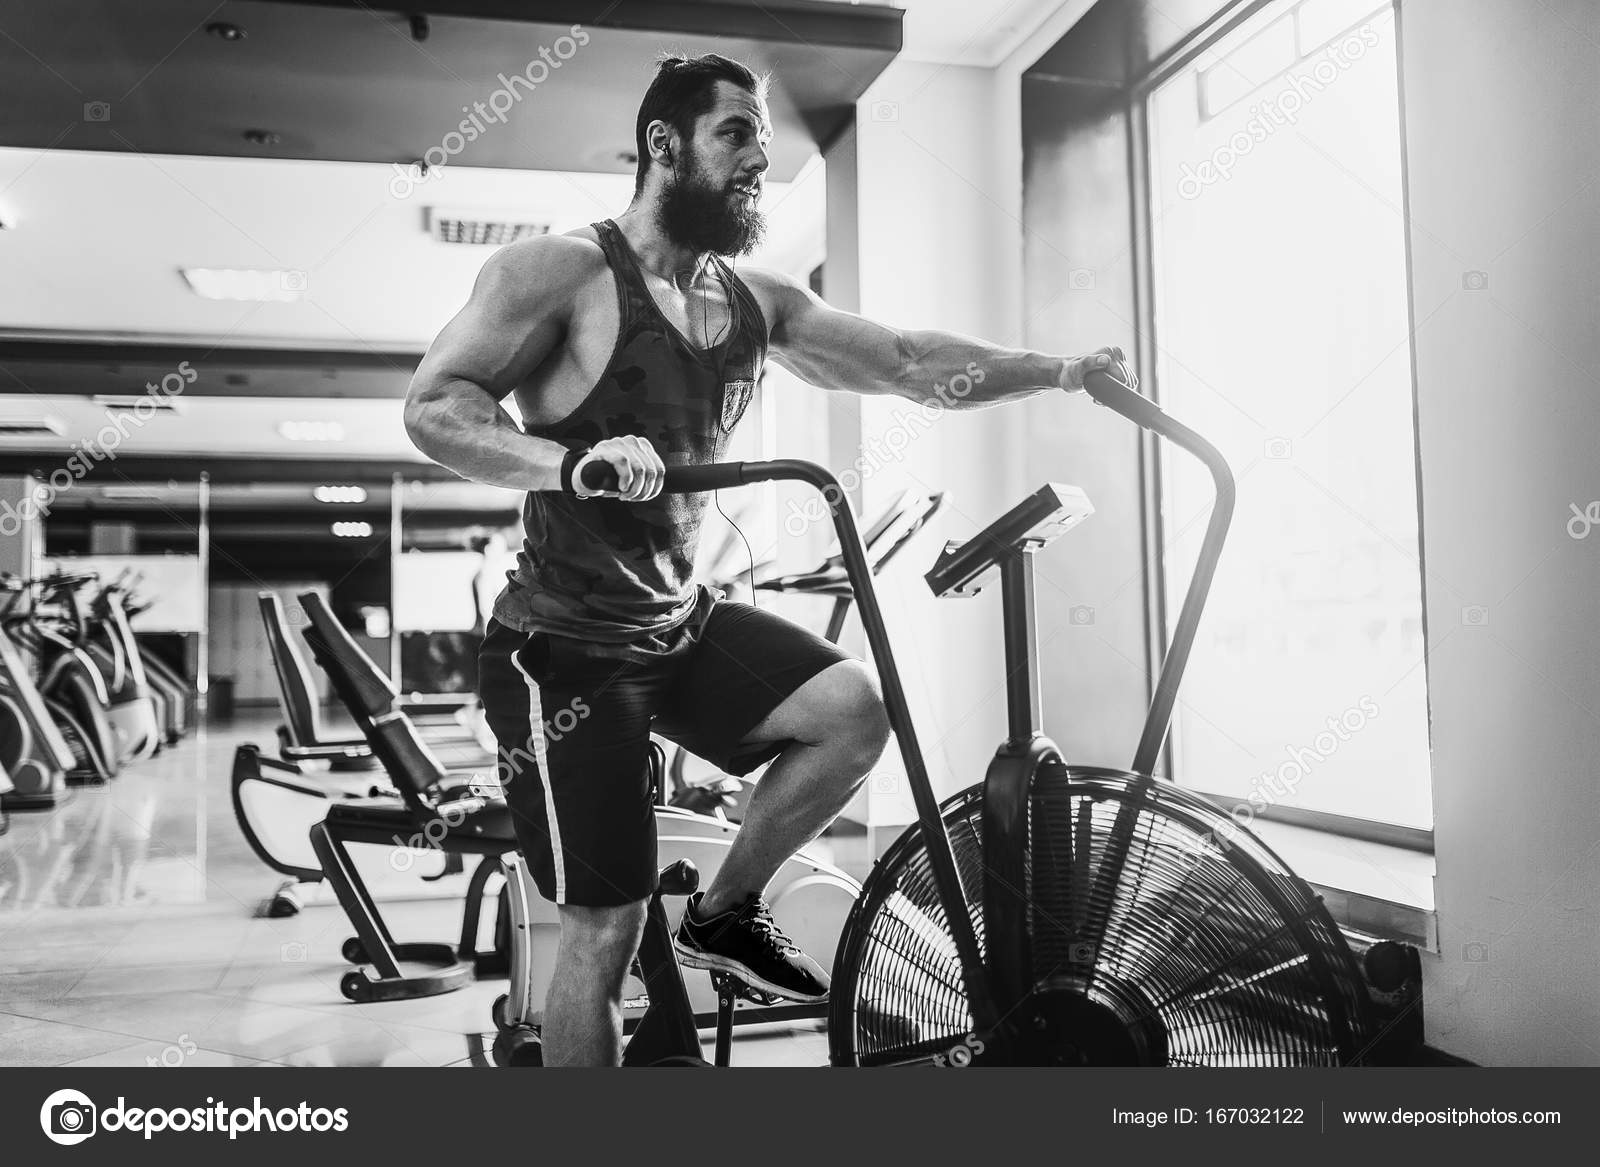 Man Using Exercise Bike At The Gym Fitness Male Air For Cardio Workout Functional Training Photo By Zamuruev